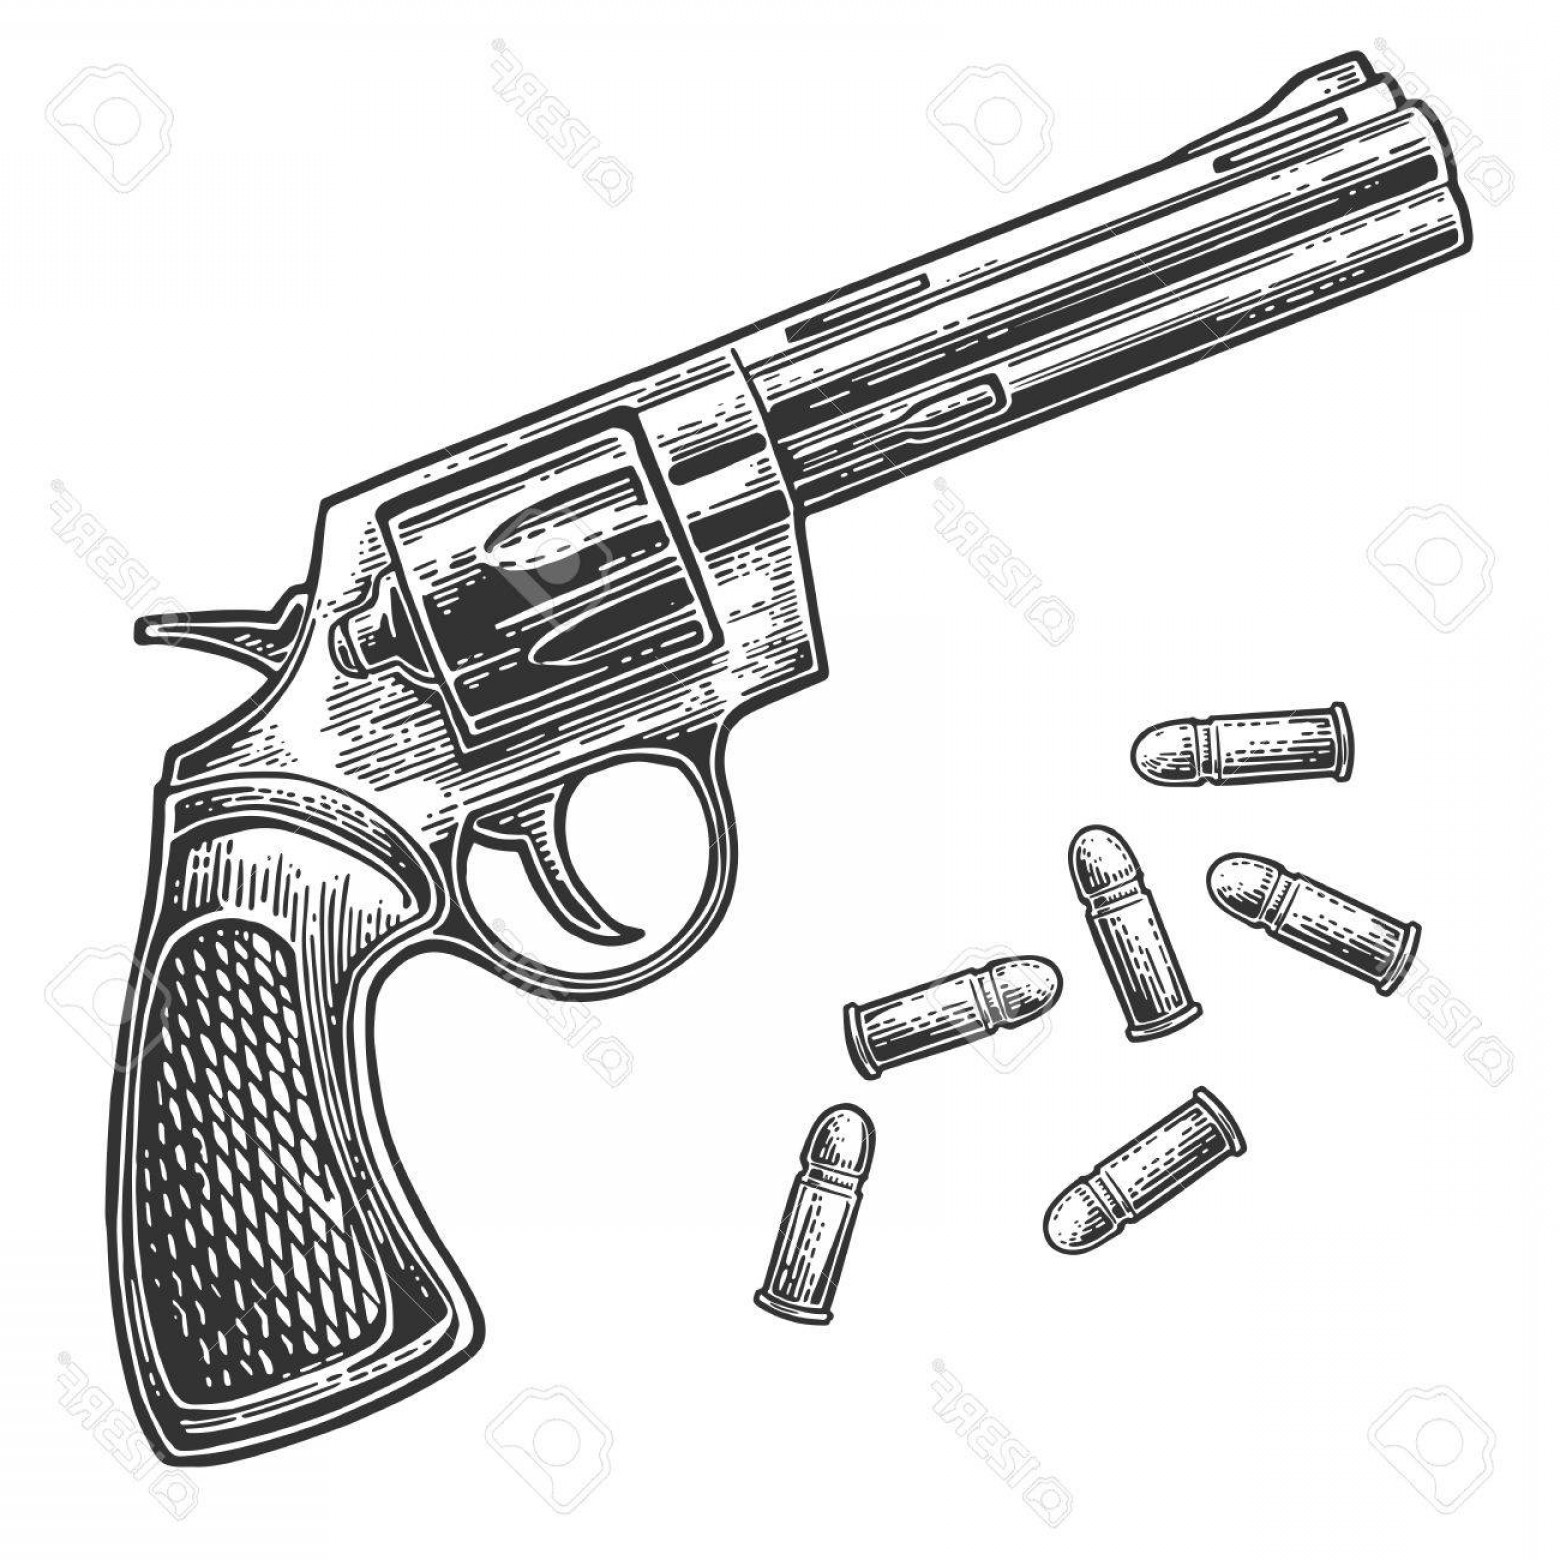 Vector Old Colt Revolvers: Photostock Vector Revolver With Bullets Vector Engraving Vintage Illustrations Isolated On White Background For Tattoo